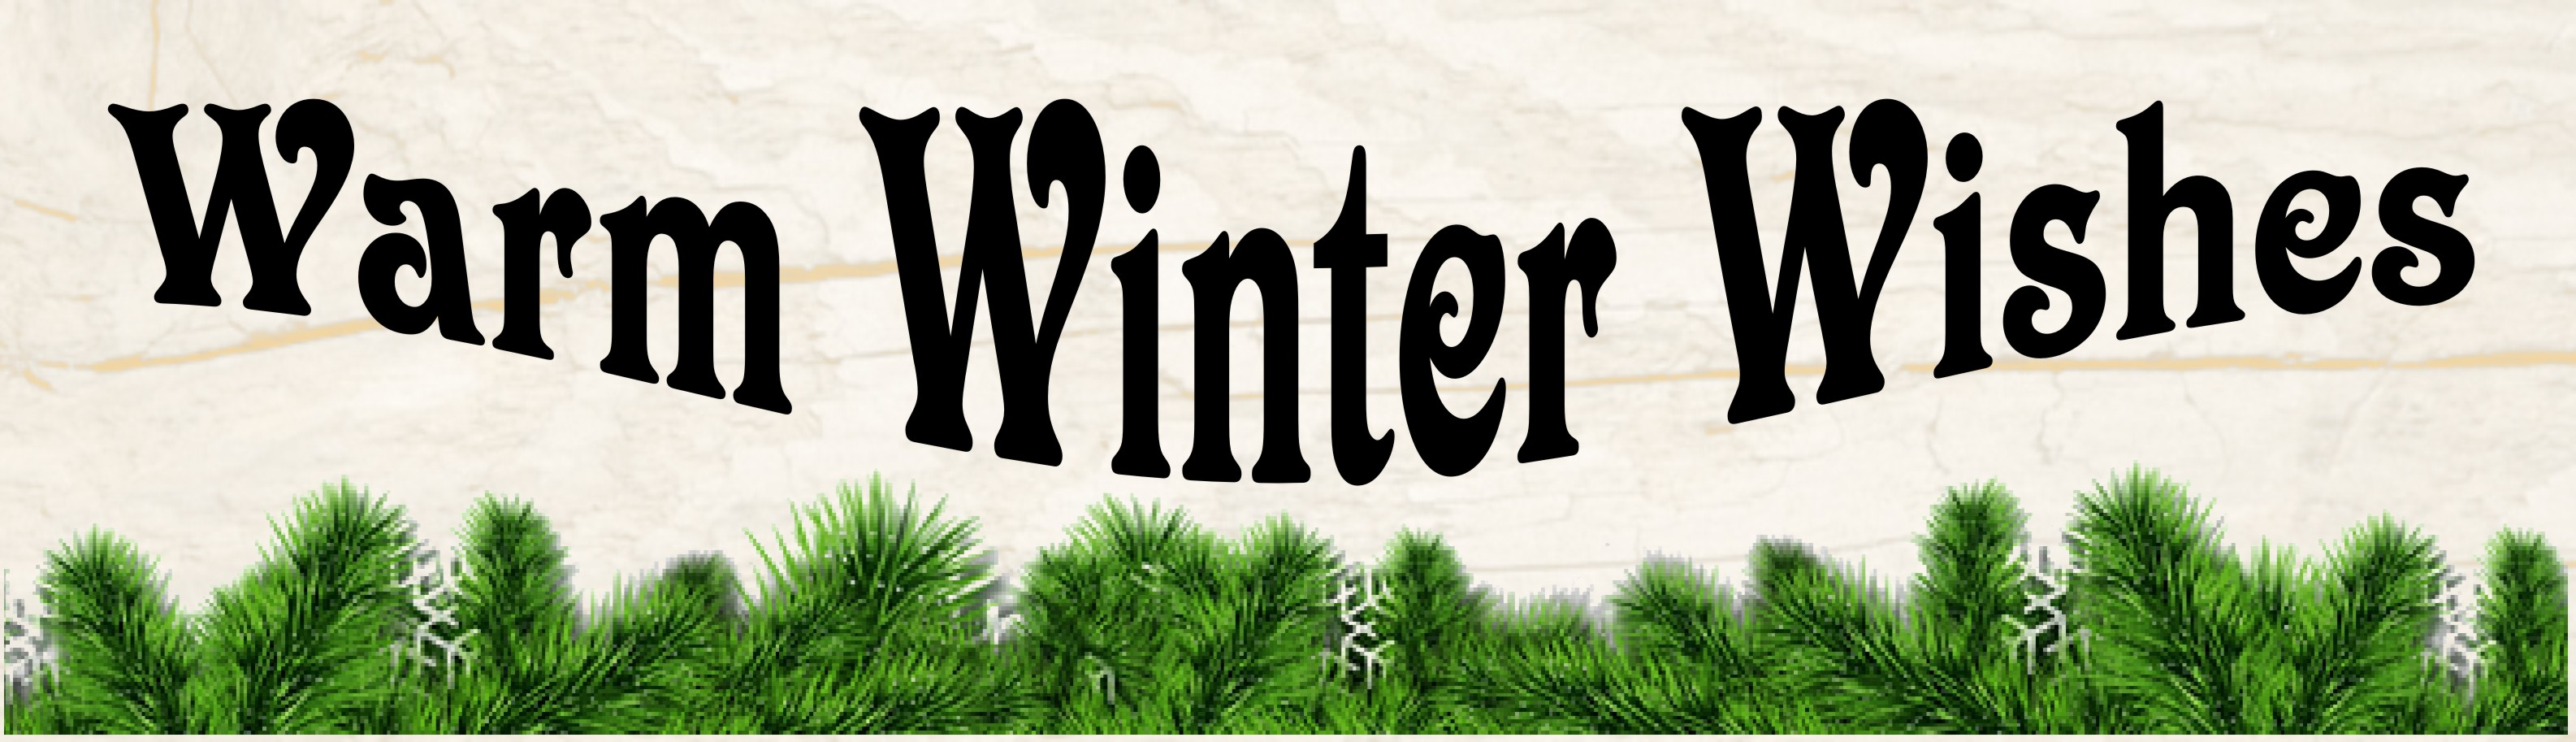 "WARM WINTER WISHES 10.5"" x 3"" WOODEN BLOCK SIGN"